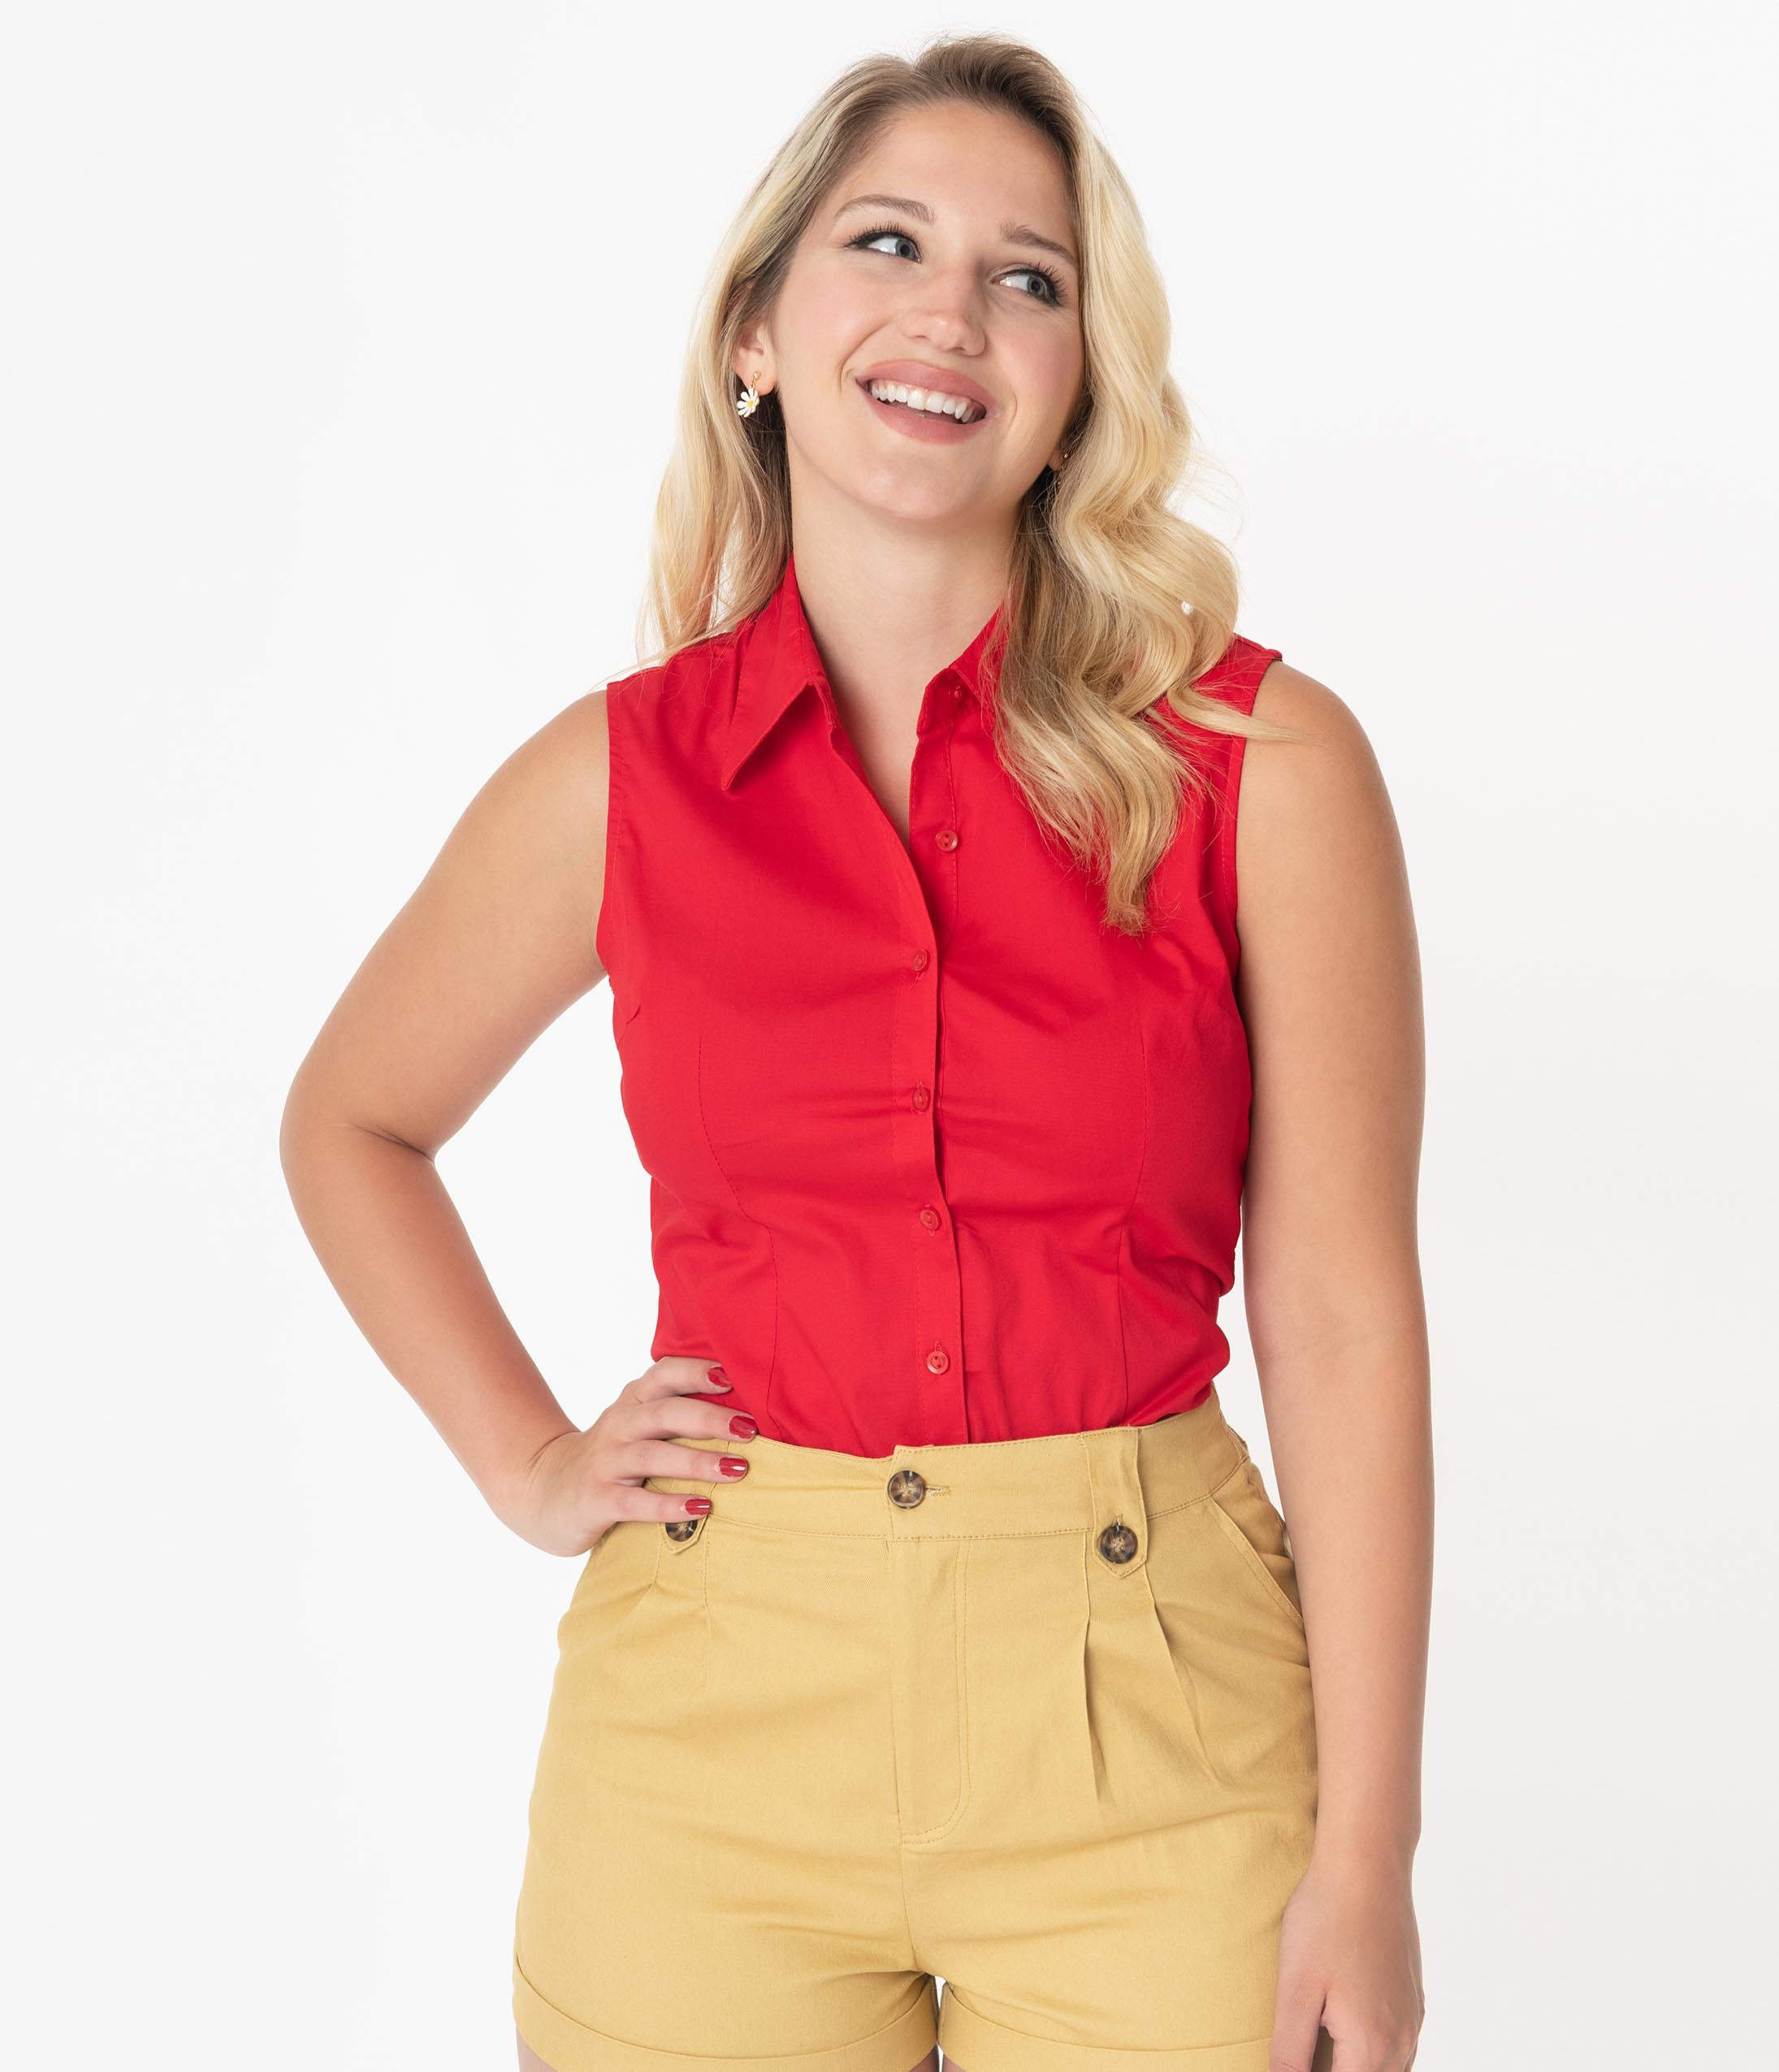 1950s Rockabilly & Pin Up Tops, Blouses, Shirts Retro Red Sleeveless Collared Cotton Button Up Blouse $36.00 AT vintagedancer.com